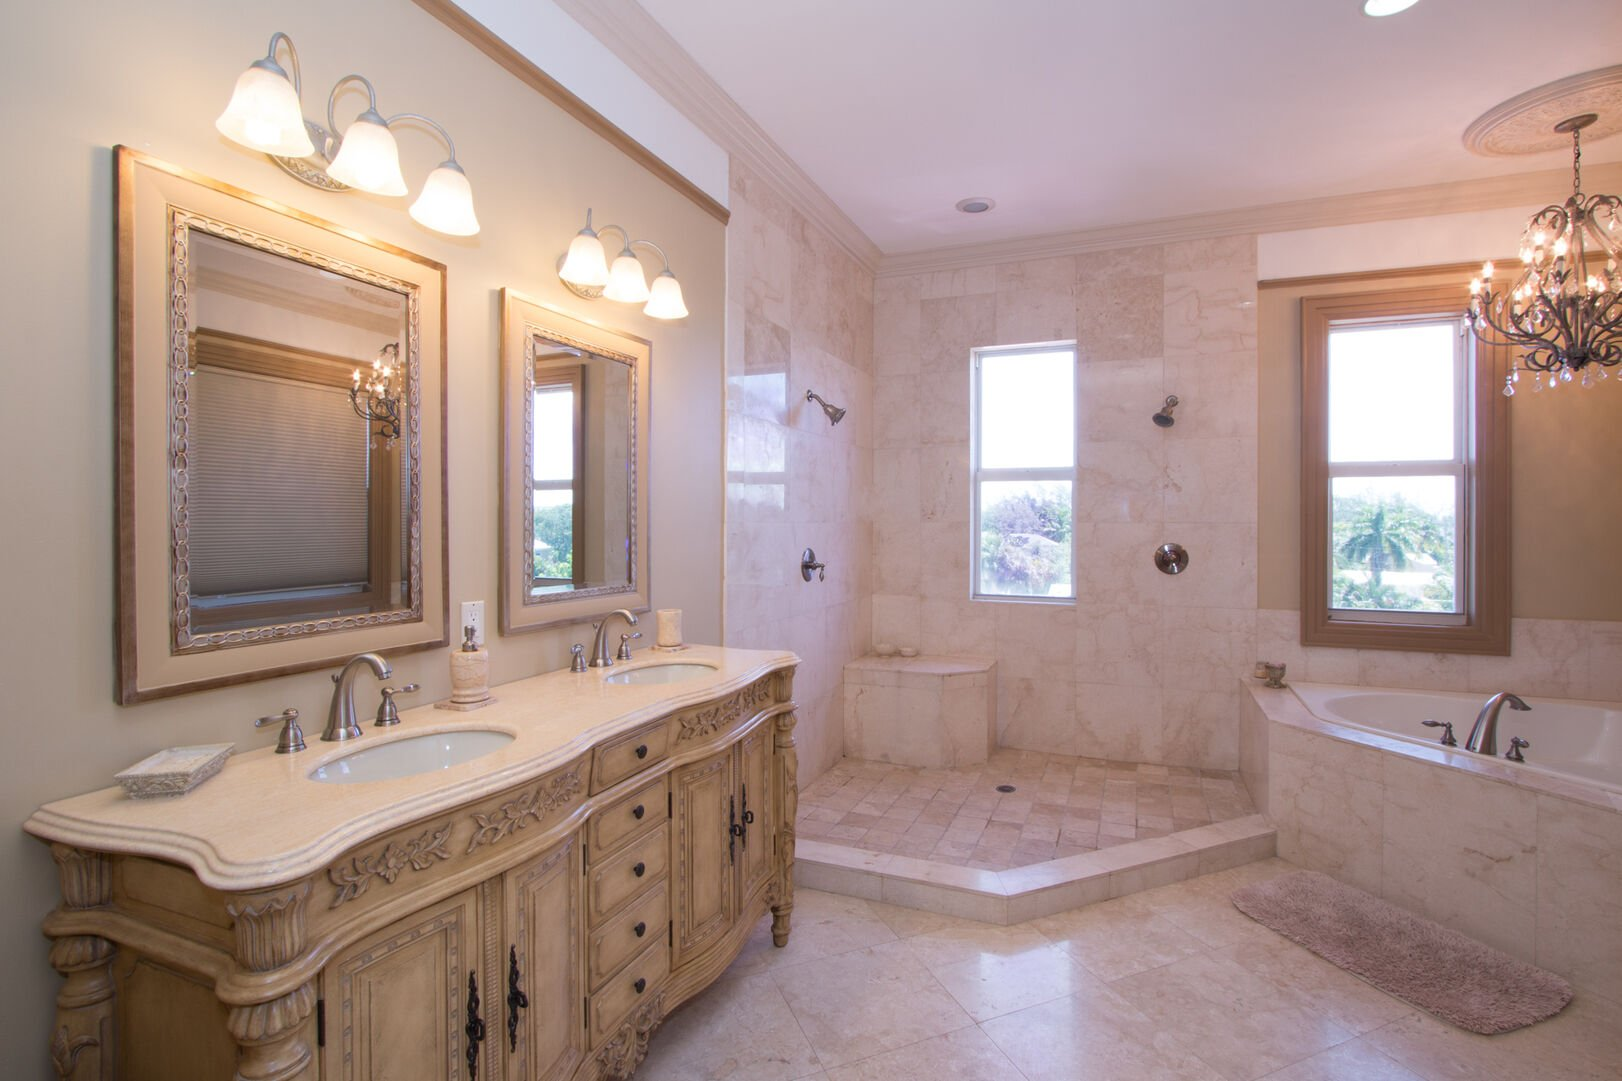 Bathroom with tub and shower in our vacation home in Fort Myers Beach